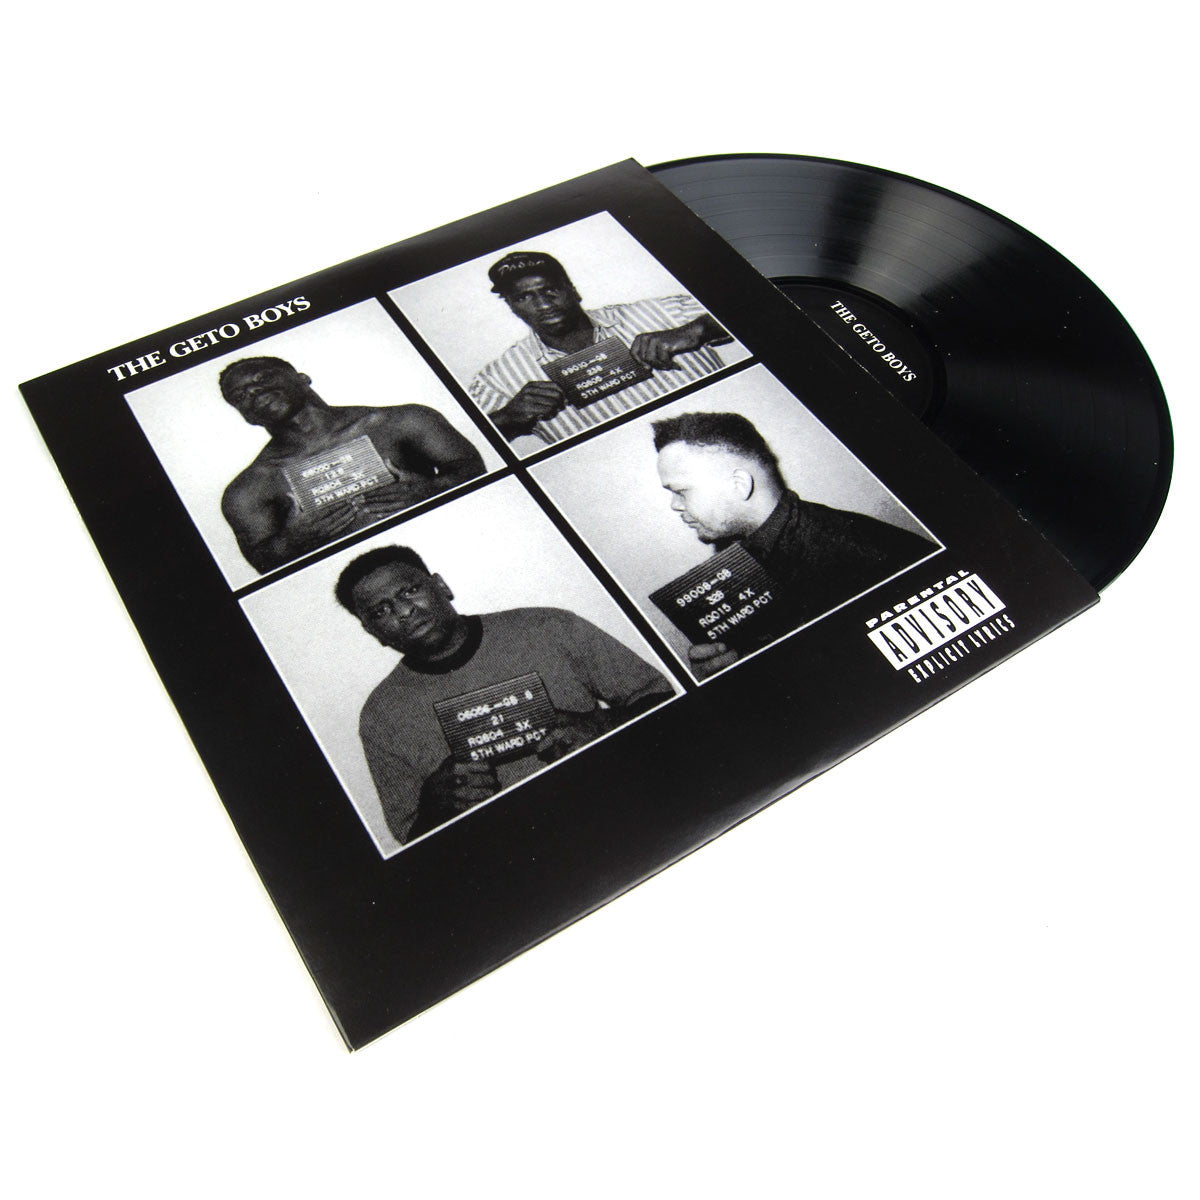 Geto Boys: The Geto Boys Vinyl LP